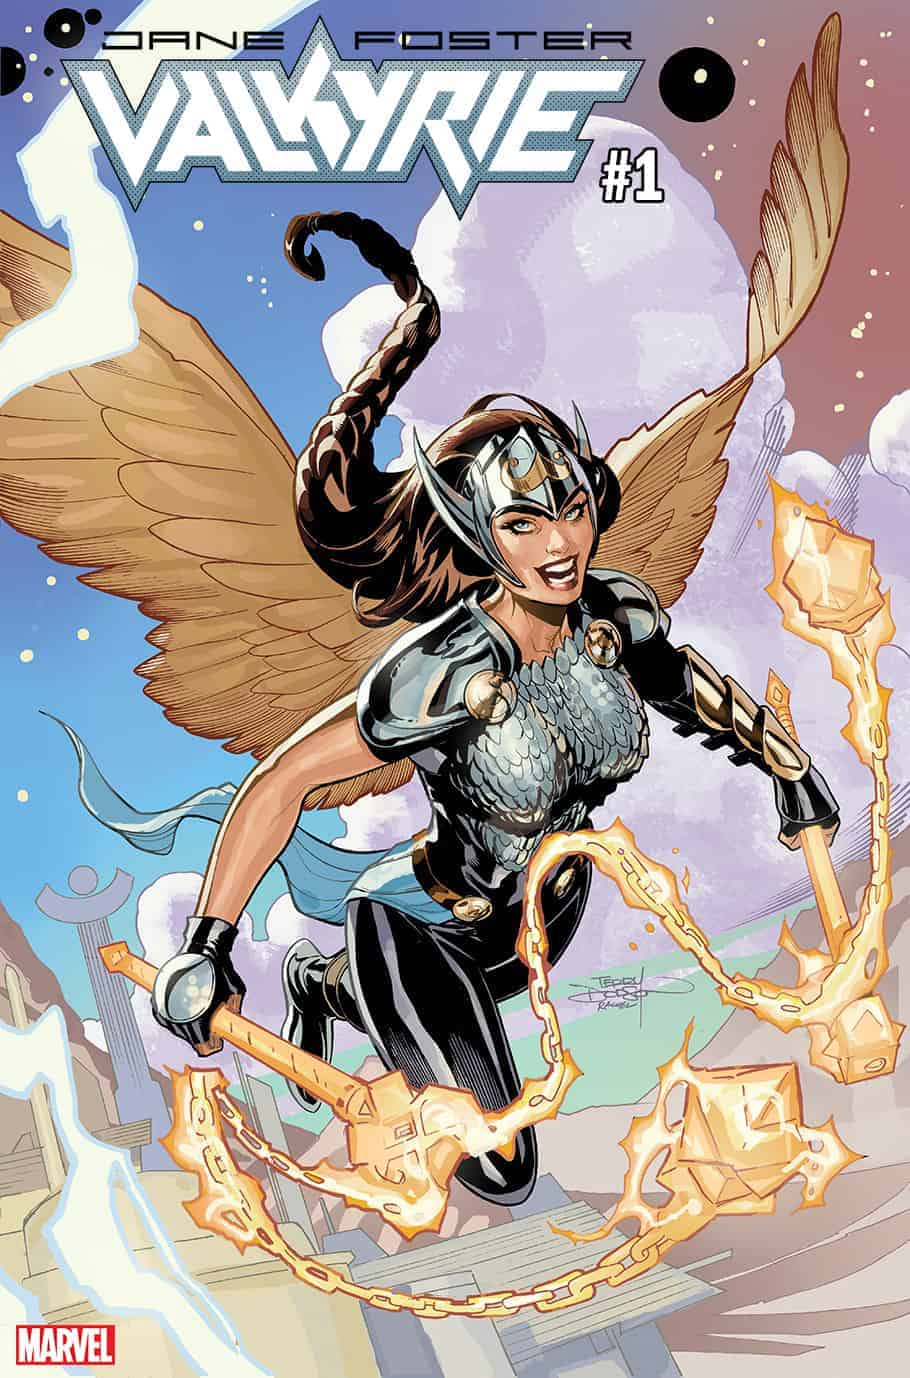 VALKYRIE JANE FOSTER #1 - Cover C